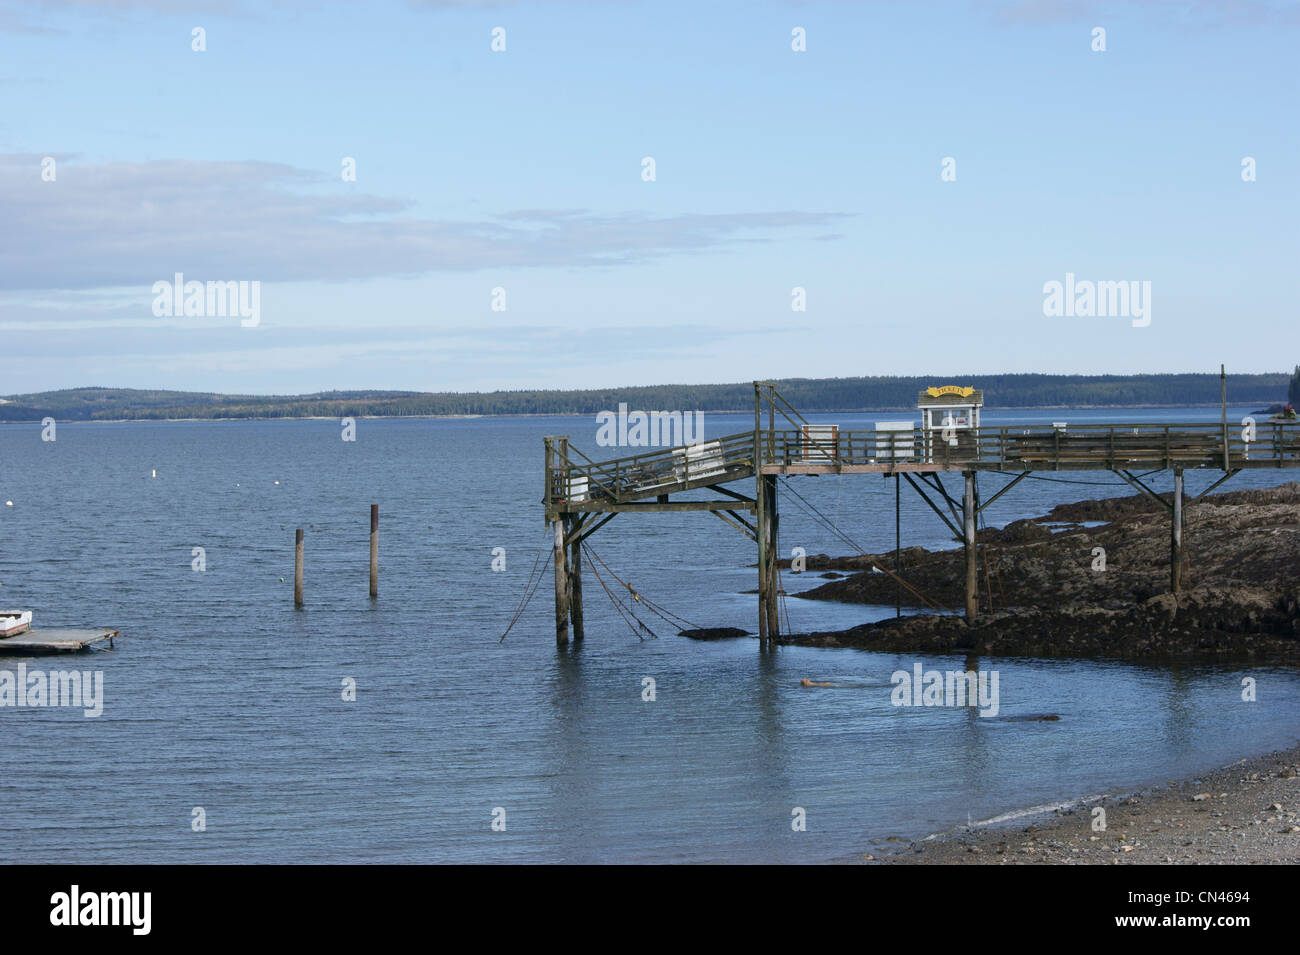 Tour boat pier with ticket office in Bar Harbor, Maine. - Stock Image